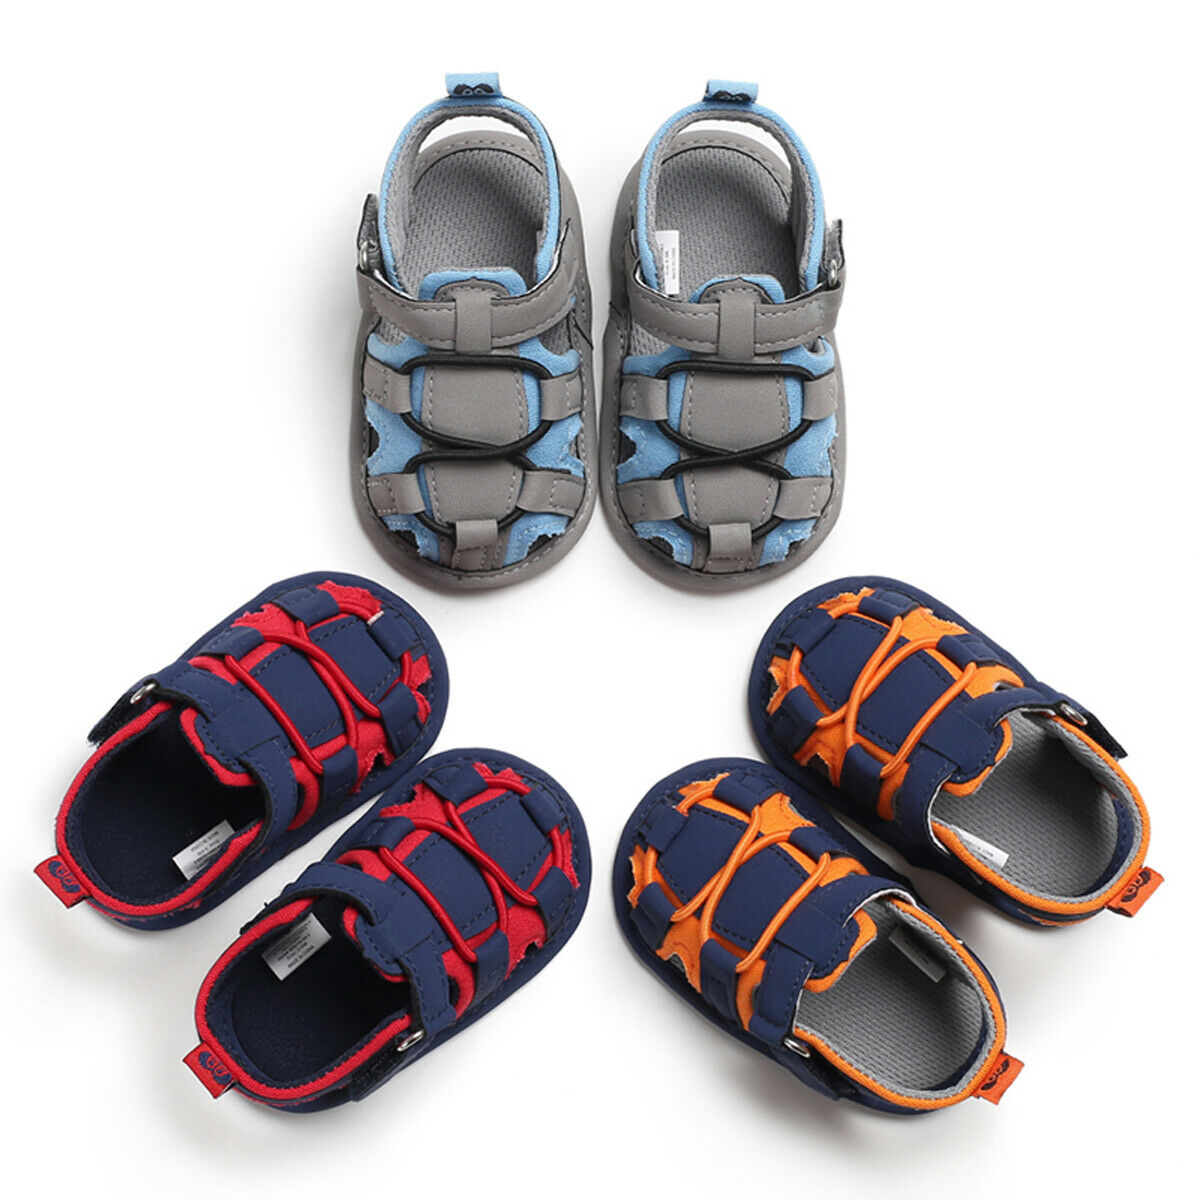 0 18 Months Newborns Shoes Infant Boys Girls Buckled Sandals Soft Sole Shoes in Sandals Clogs from Mother Kids